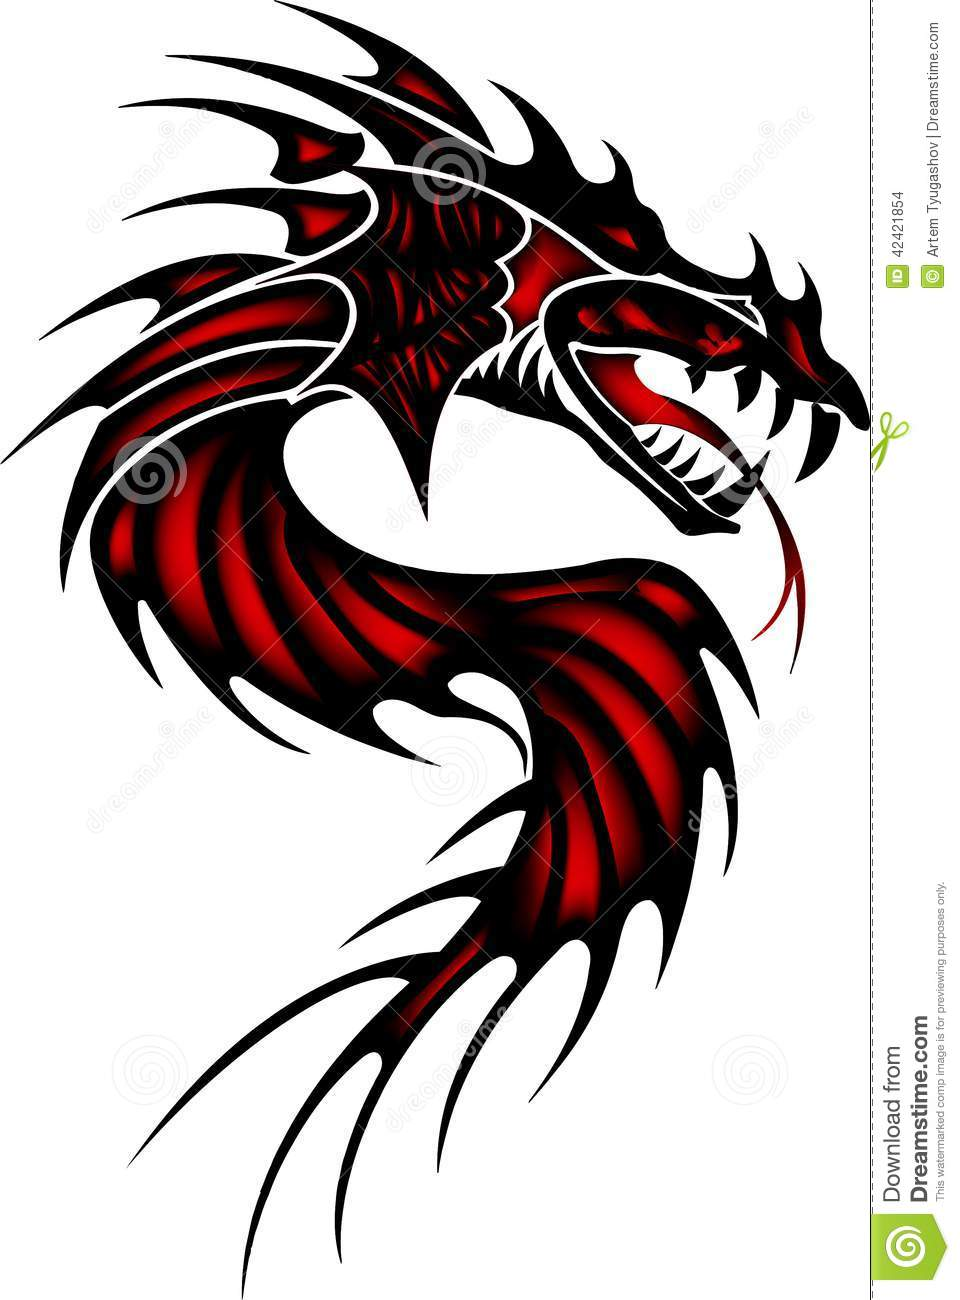 chinese dragon tattoo is a popular choice for many and